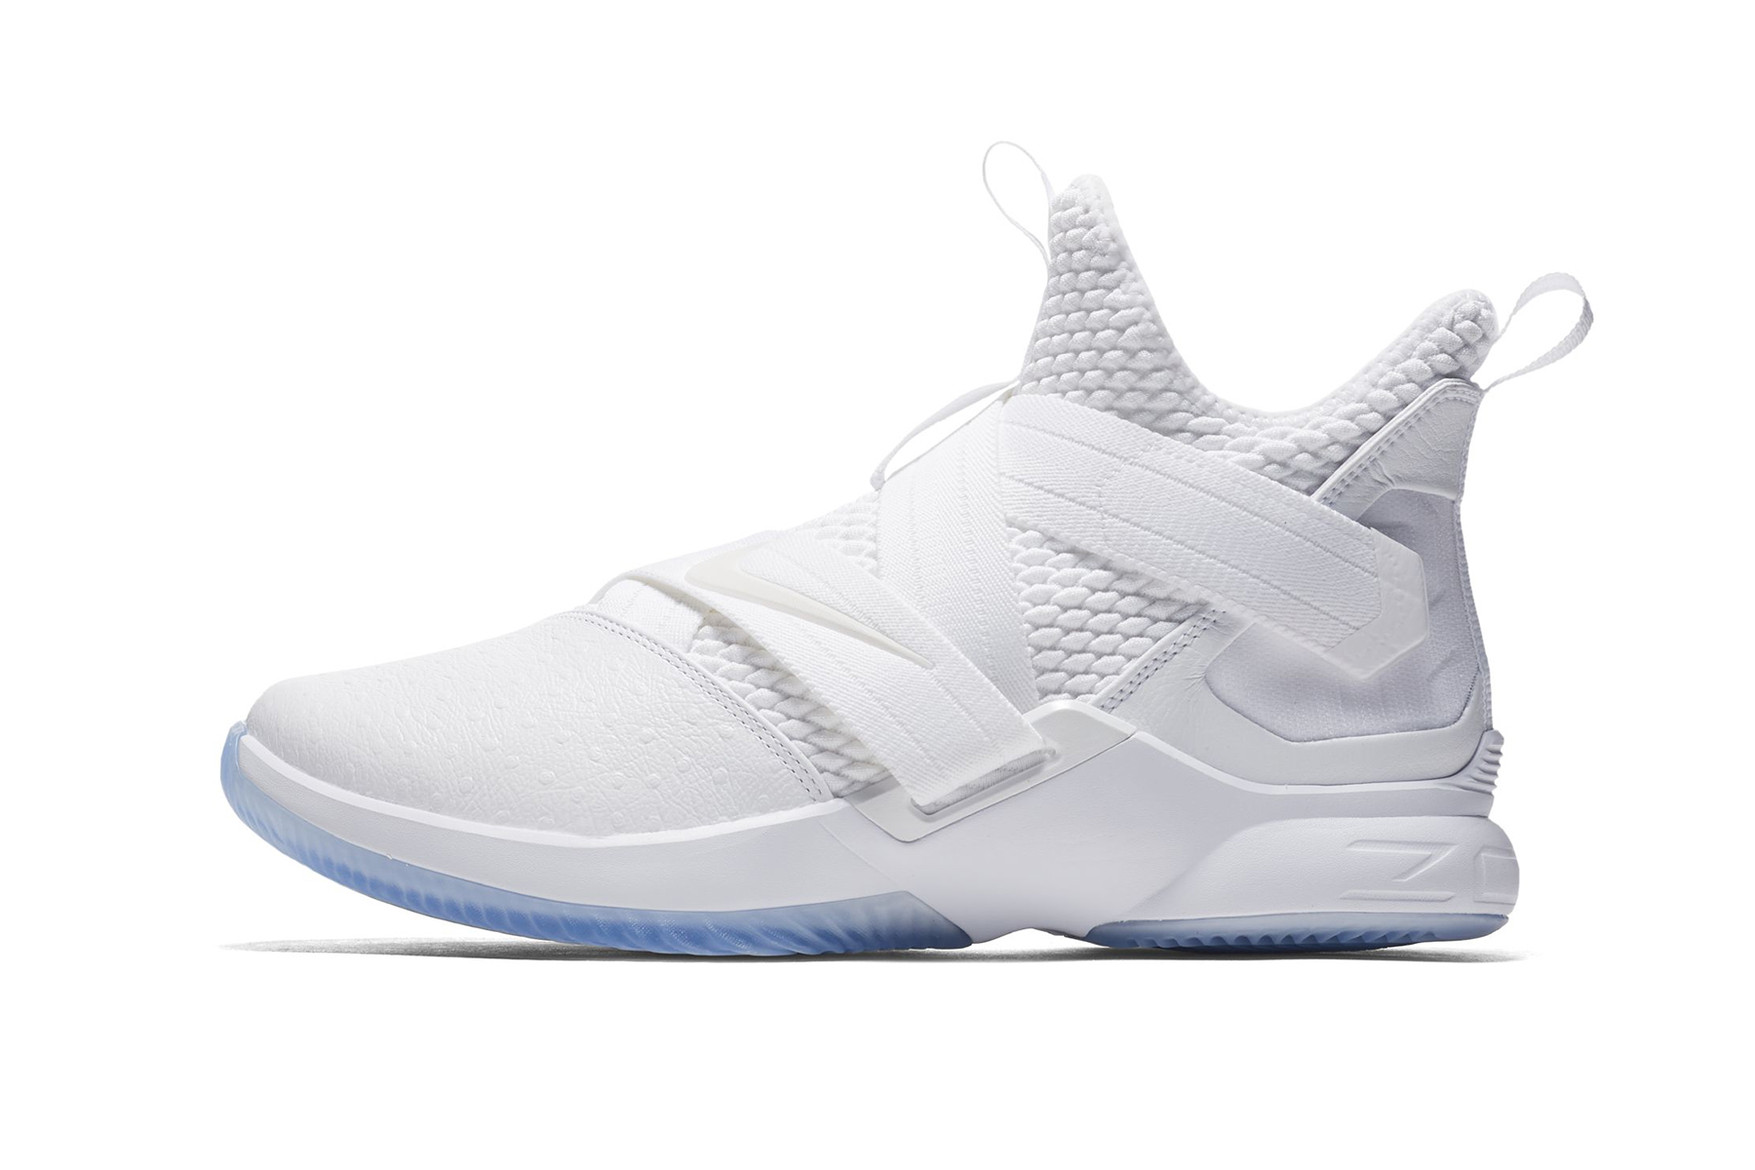 big sale b11bf 53d76 Nike LeBron Soldier 12